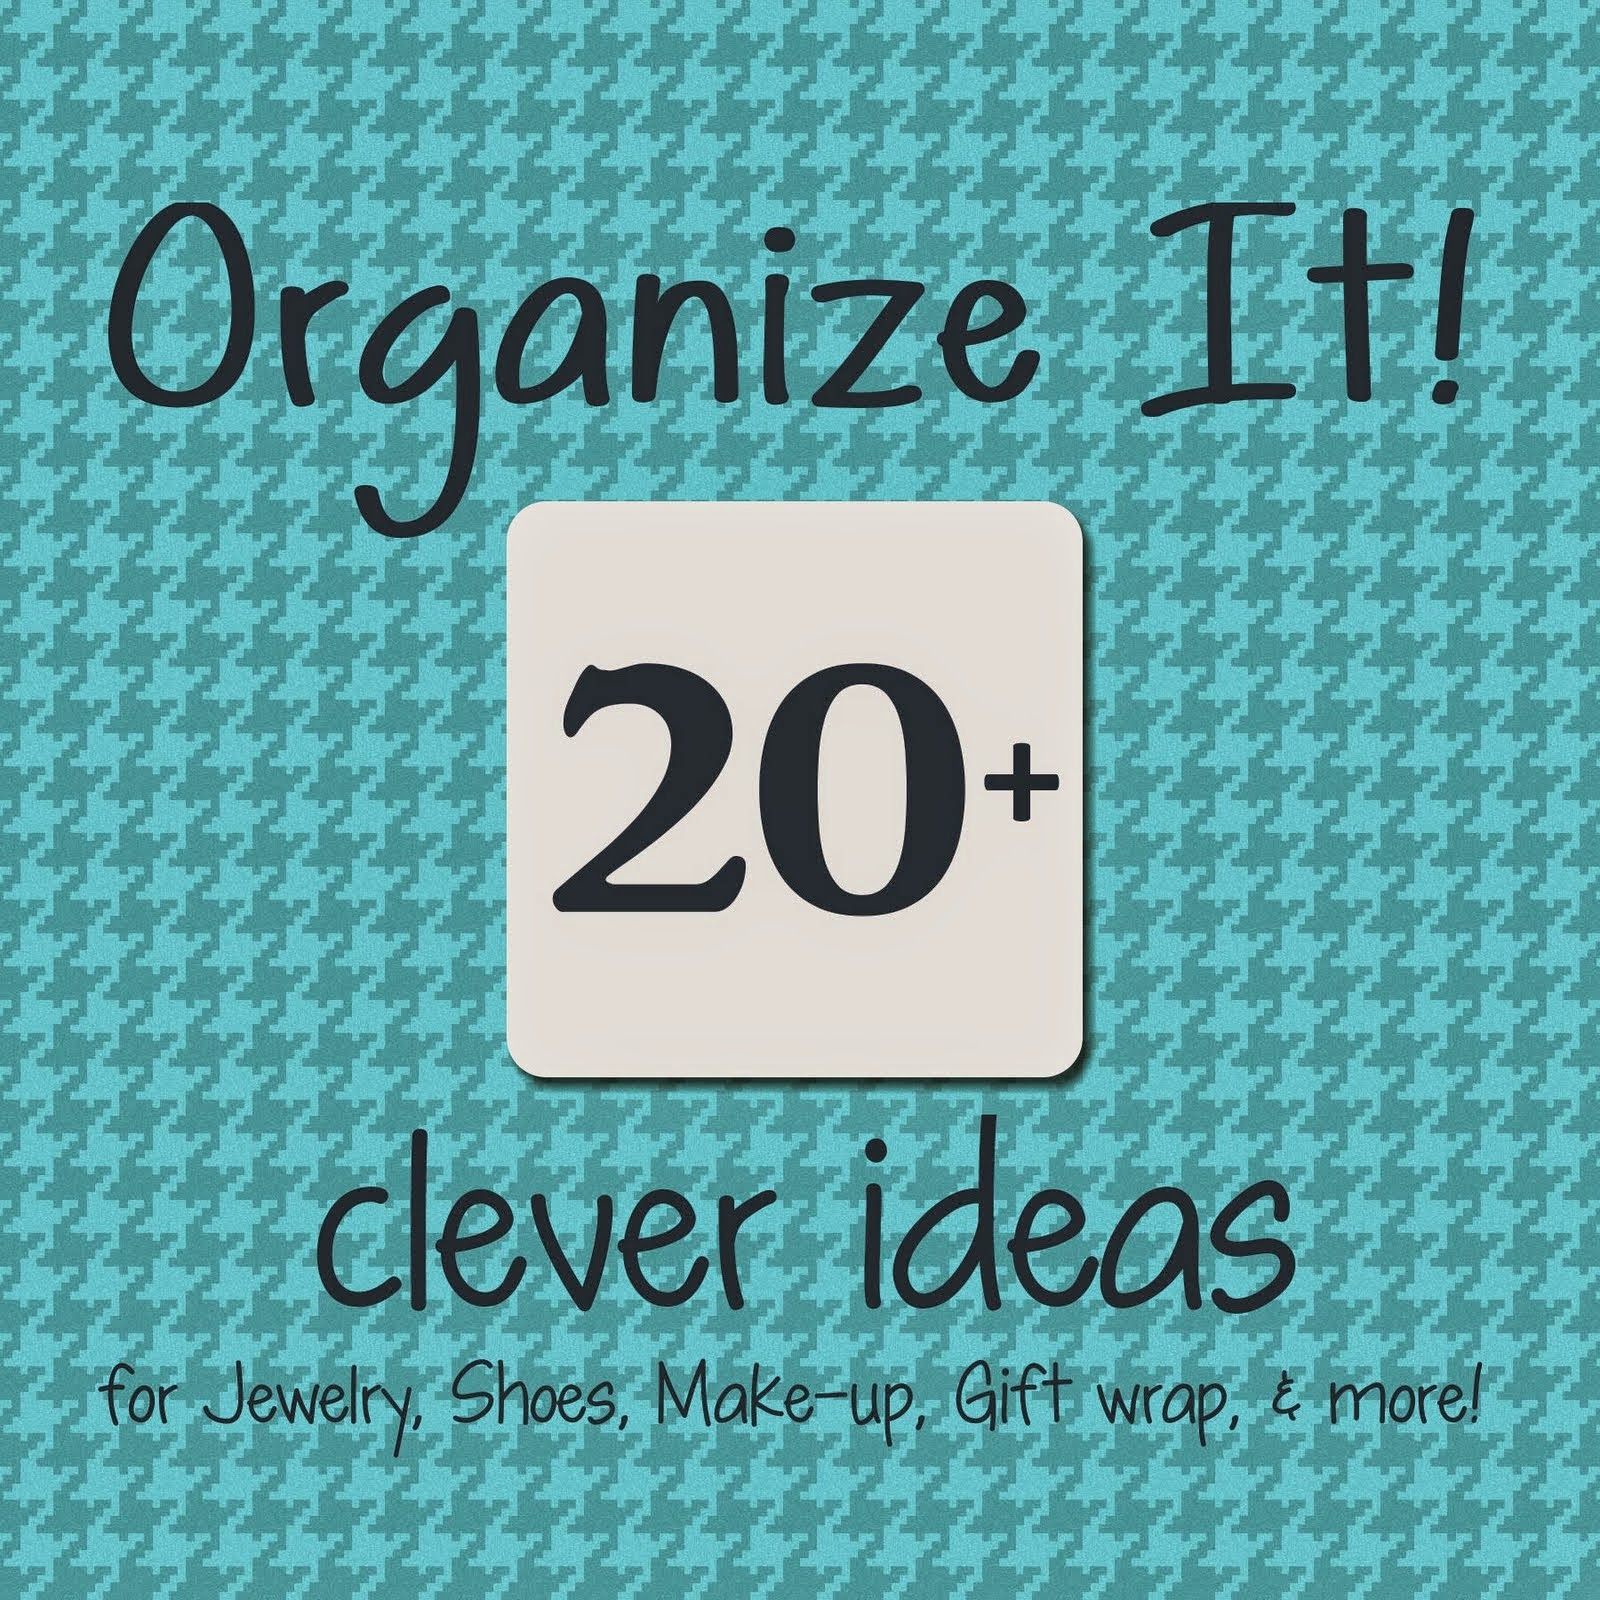 Get Organized 20+ Clever Ideas